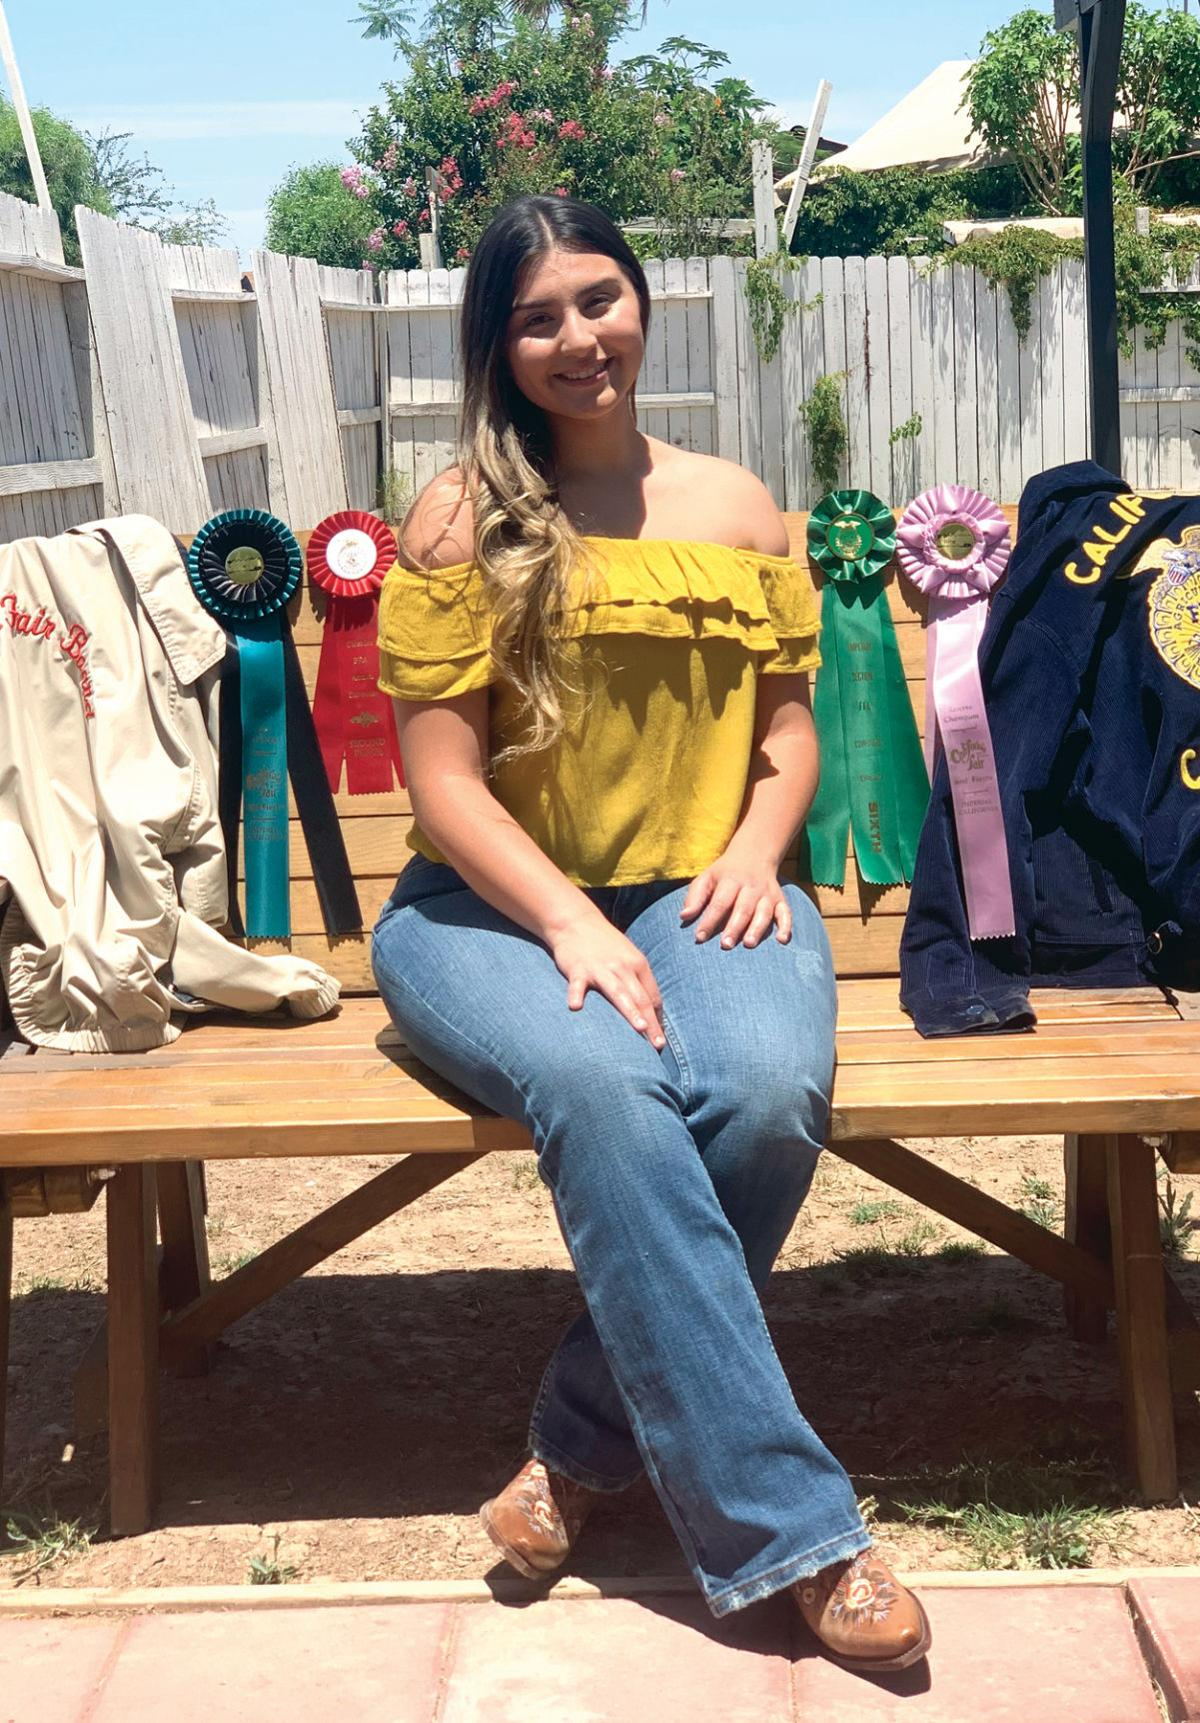 Anika-Renee Herrera: Ready for the next stage of the journey